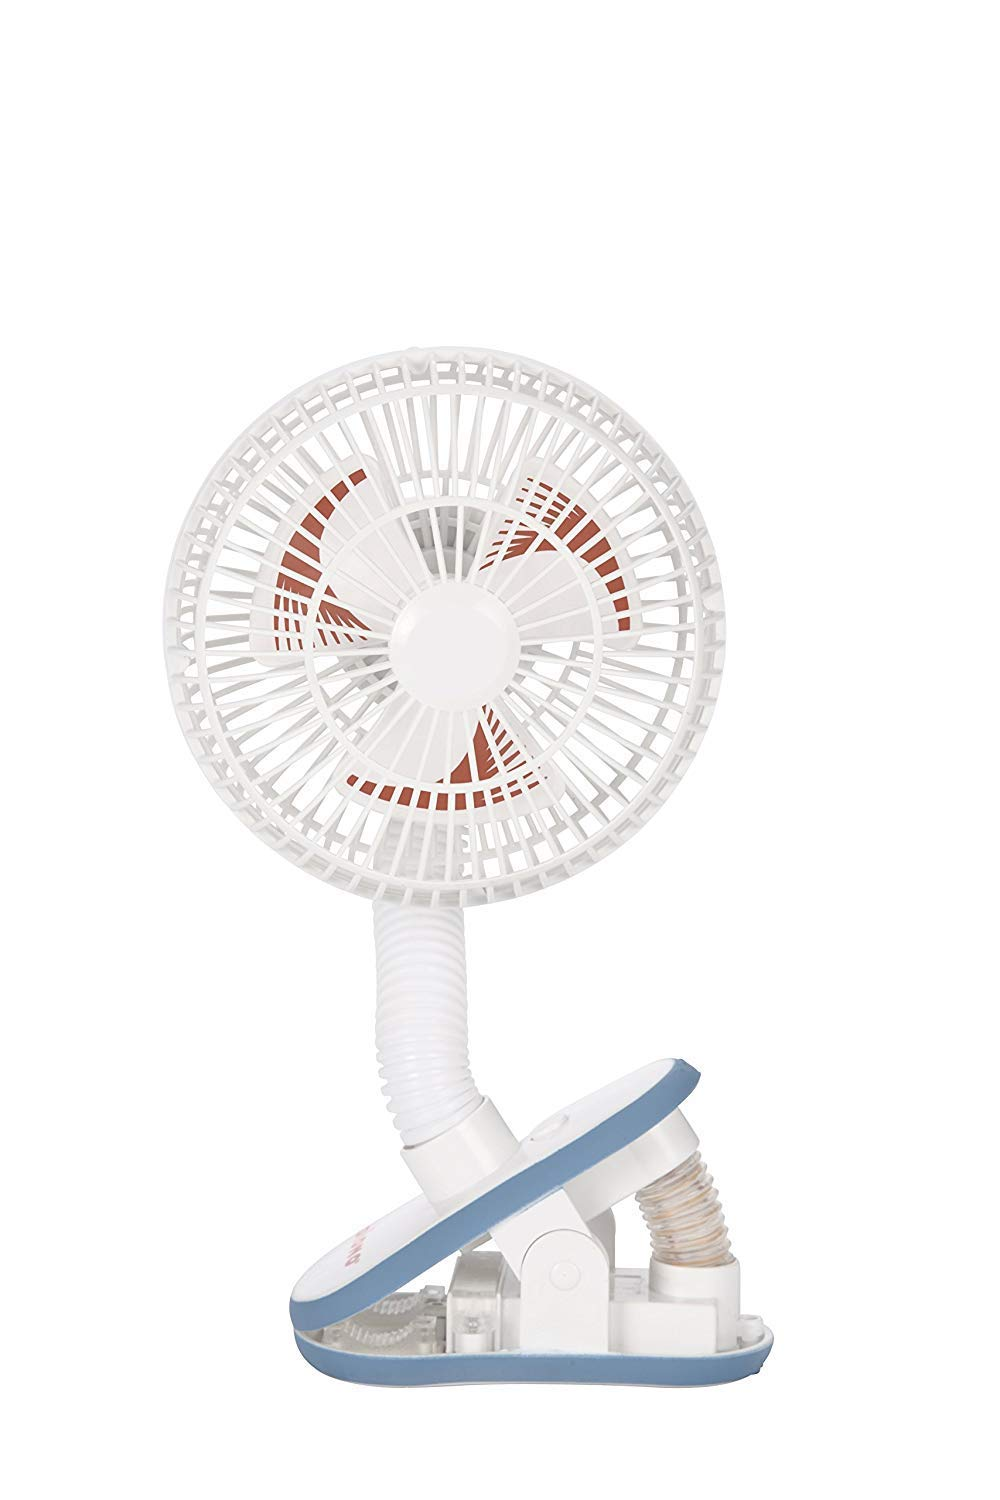 Diono Stroller Fan, Keeps Baby Cool on The Go, White by Diono